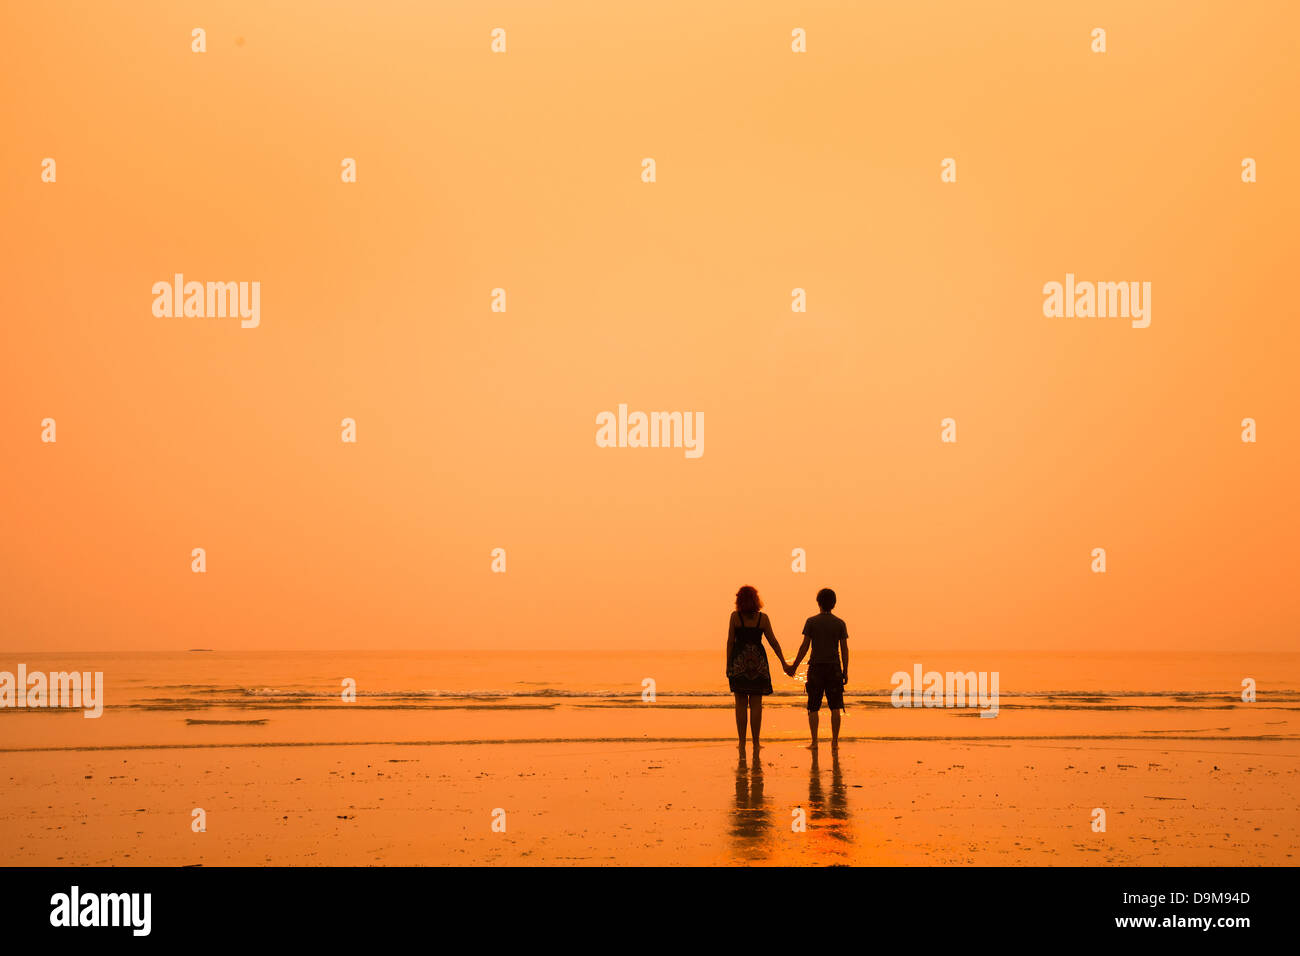 sunset silhouettes of loving couple on the beach - Stock Image